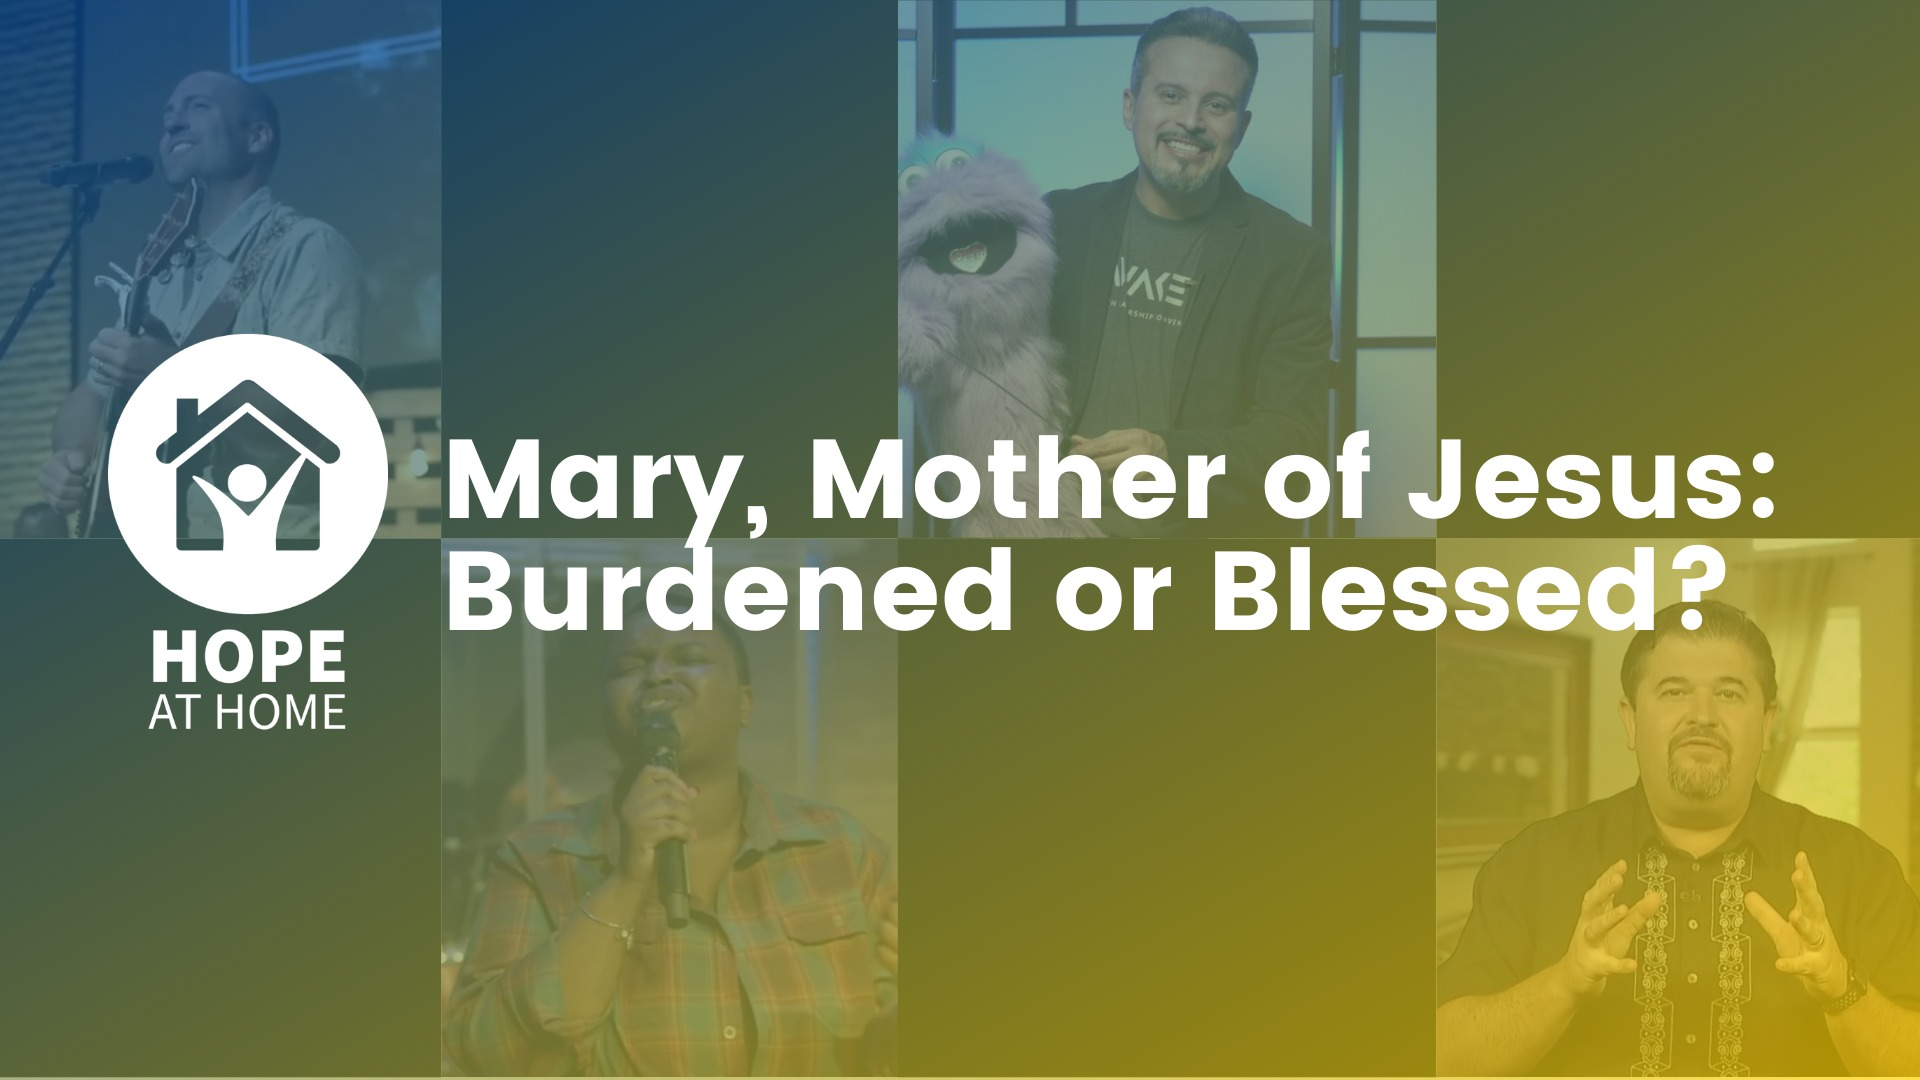 Mary, Mother of Jesus: Burdened Or Blessed?